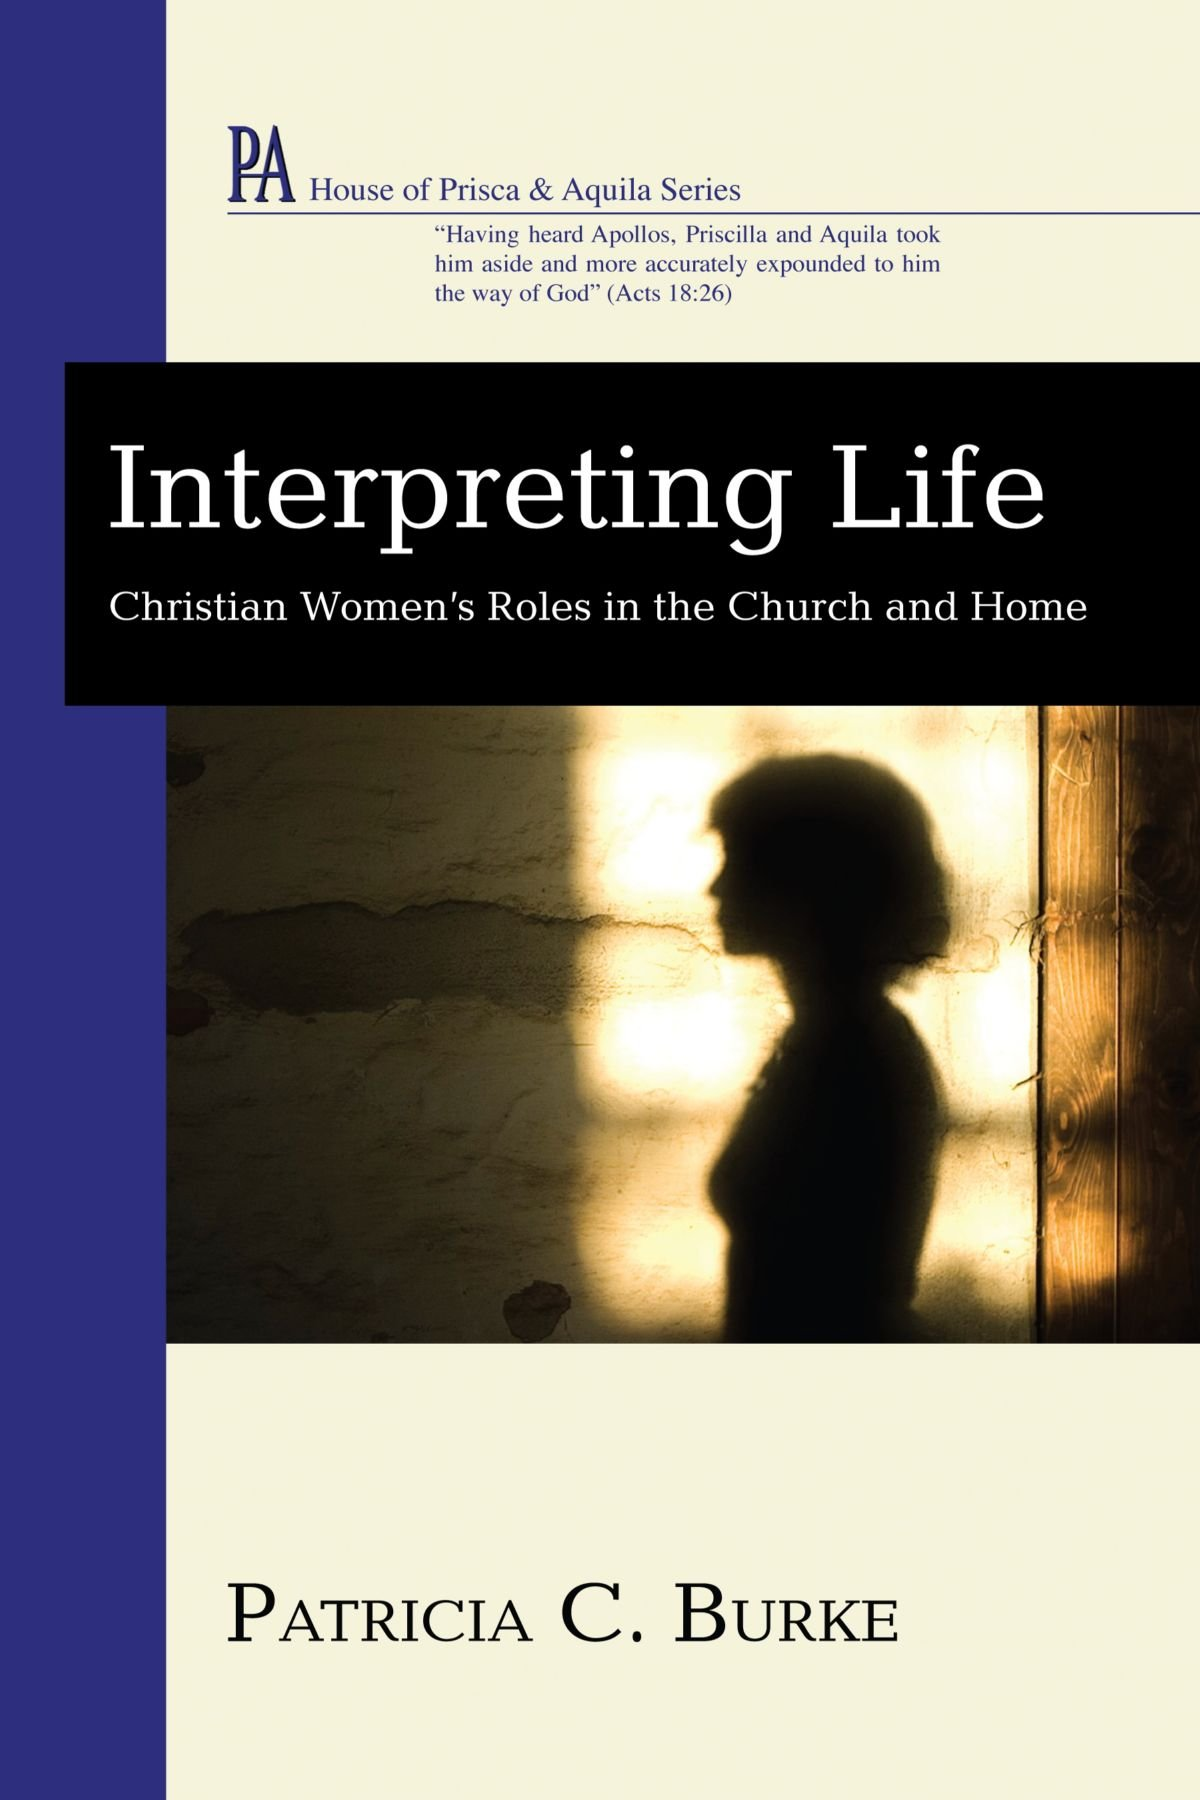 Interpreting Life: Christian Women's Roles in the Church and Home (House of Prisca & Aquila) pdf epub